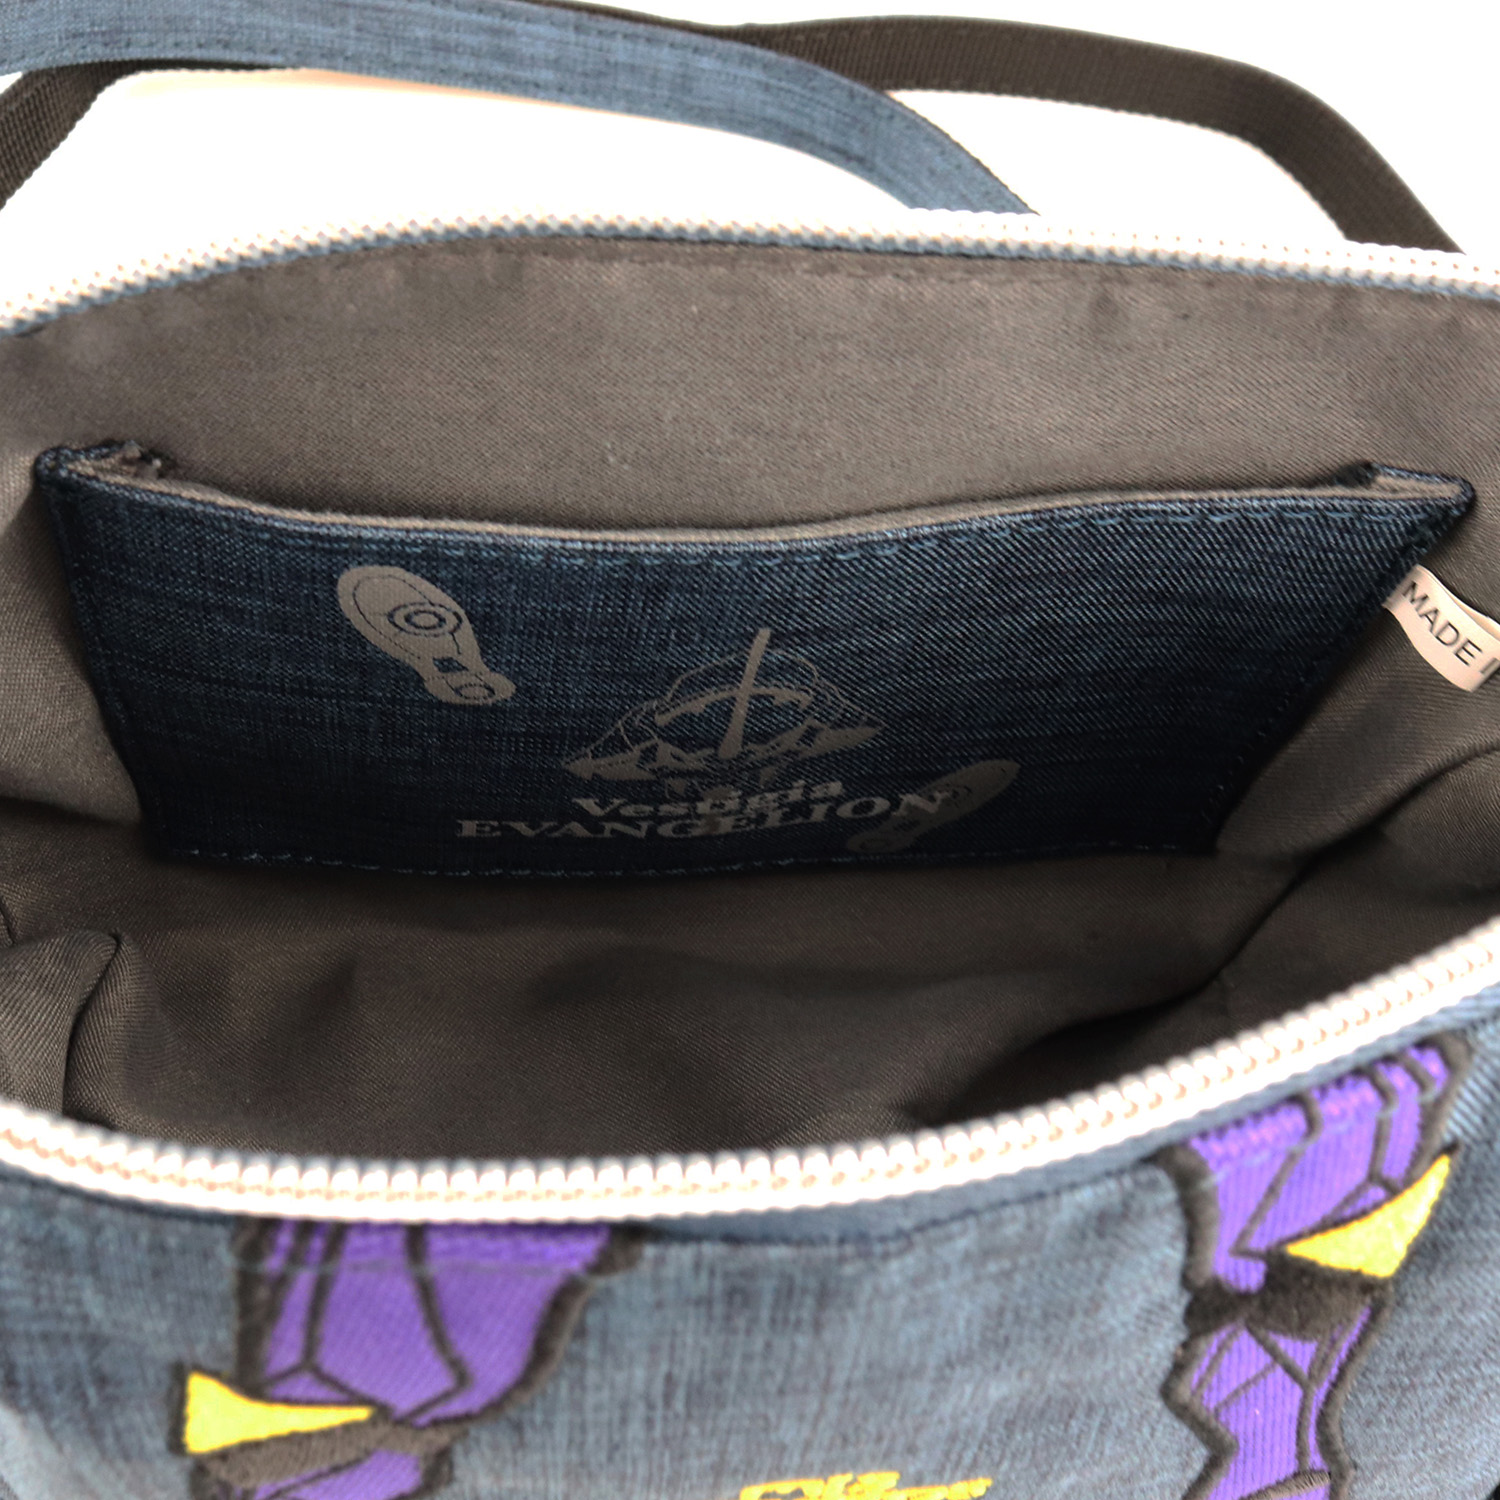 EVANGELION Pouch Shoulder Bag by mis zapatos (レッド(2号機))